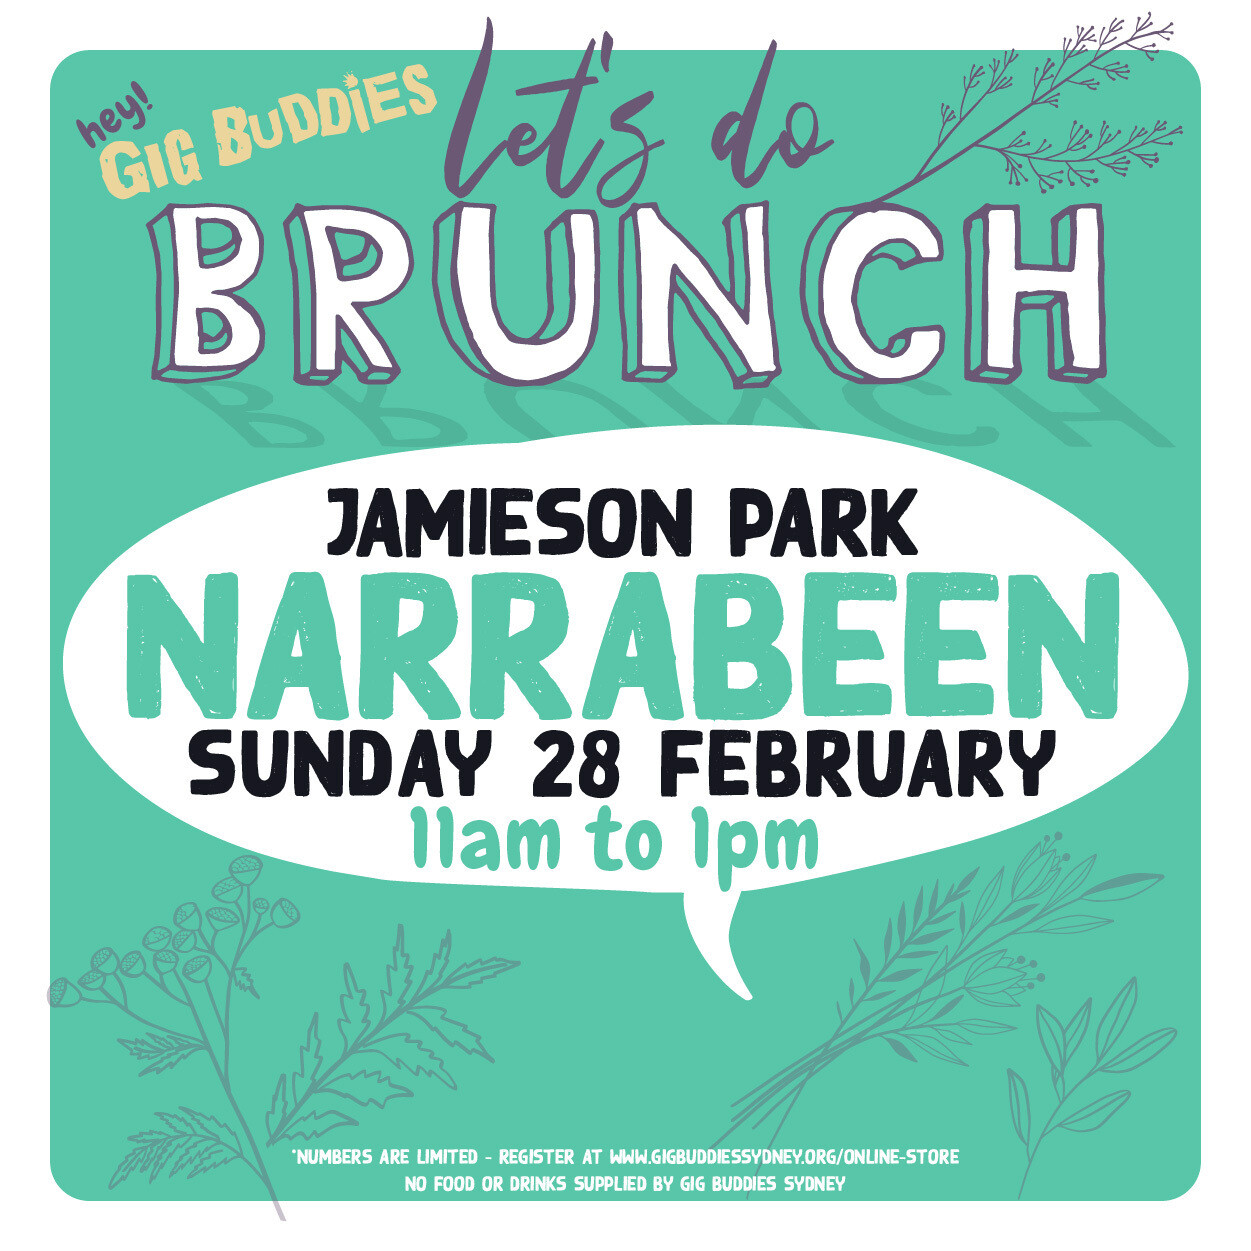 Gig Buddies Sydney Sunday brunch in the park​ @ Jamieson Park, Narrabeen - Sunday 28 February